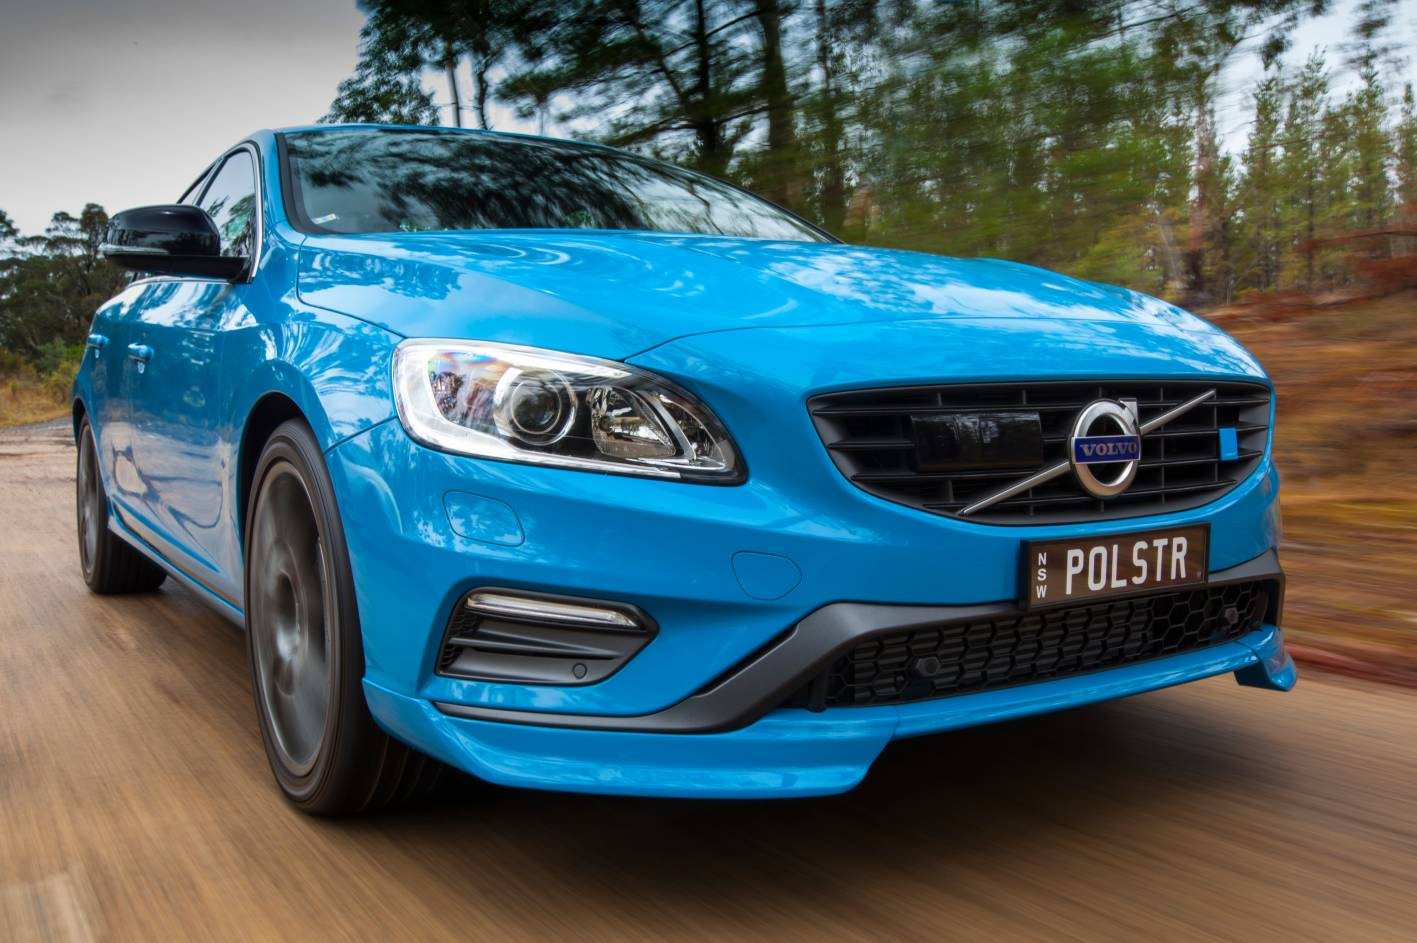 review 2015 volvo s60 polestar review and road test. Black Bedroom Furniture Sets. Home Design Ideas